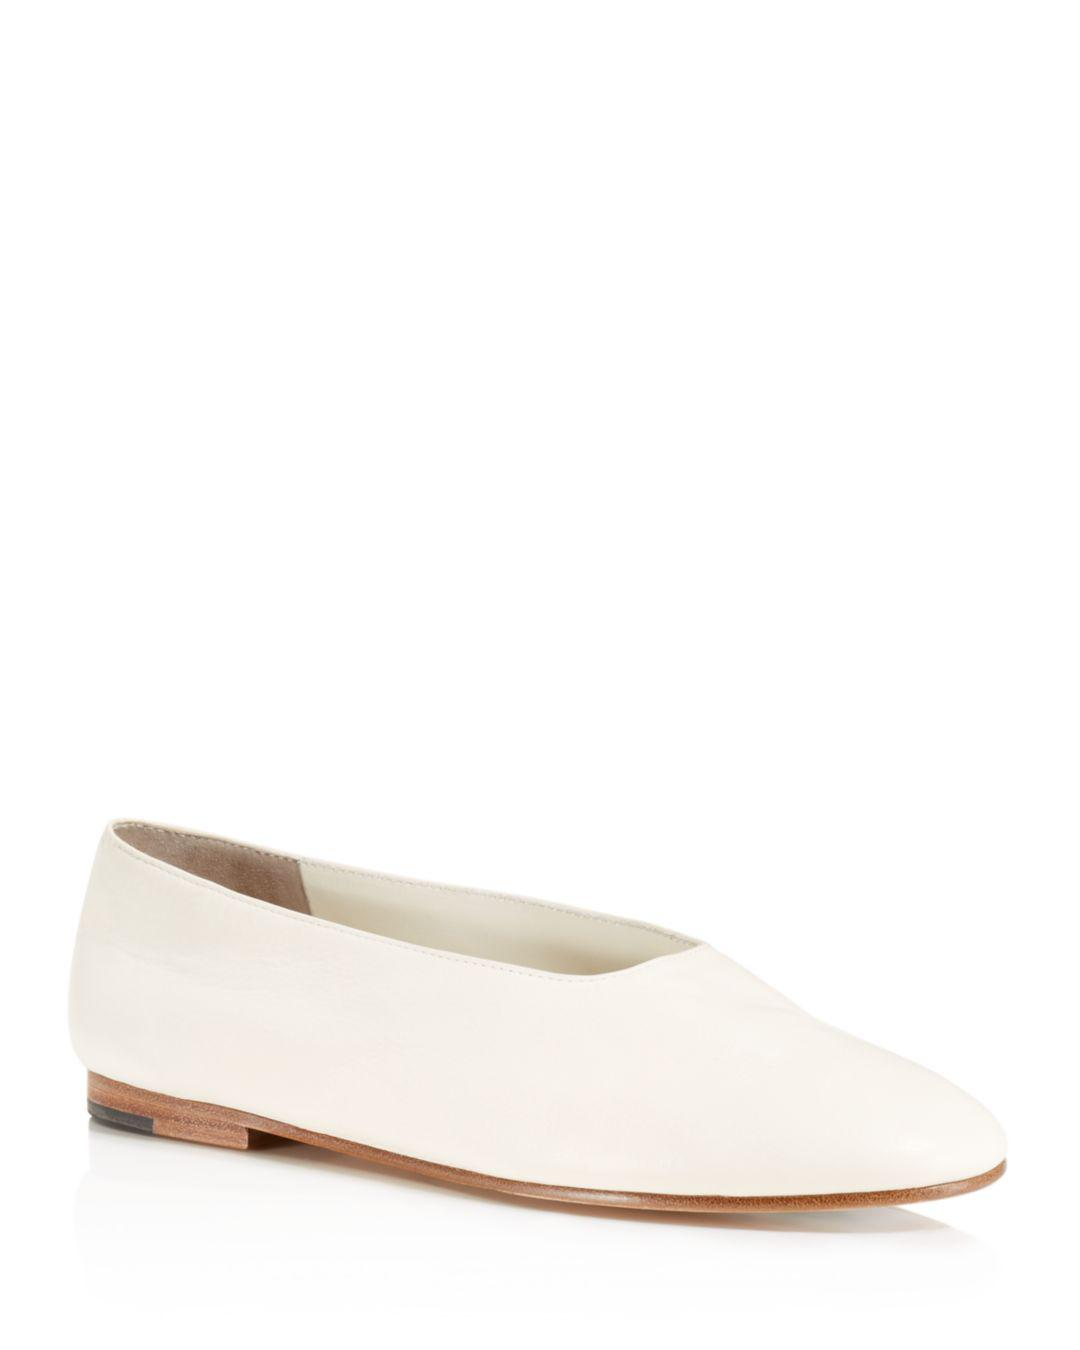 2898fc867 Vince Women's Maxwell Leather Flats in Natural - Lyst